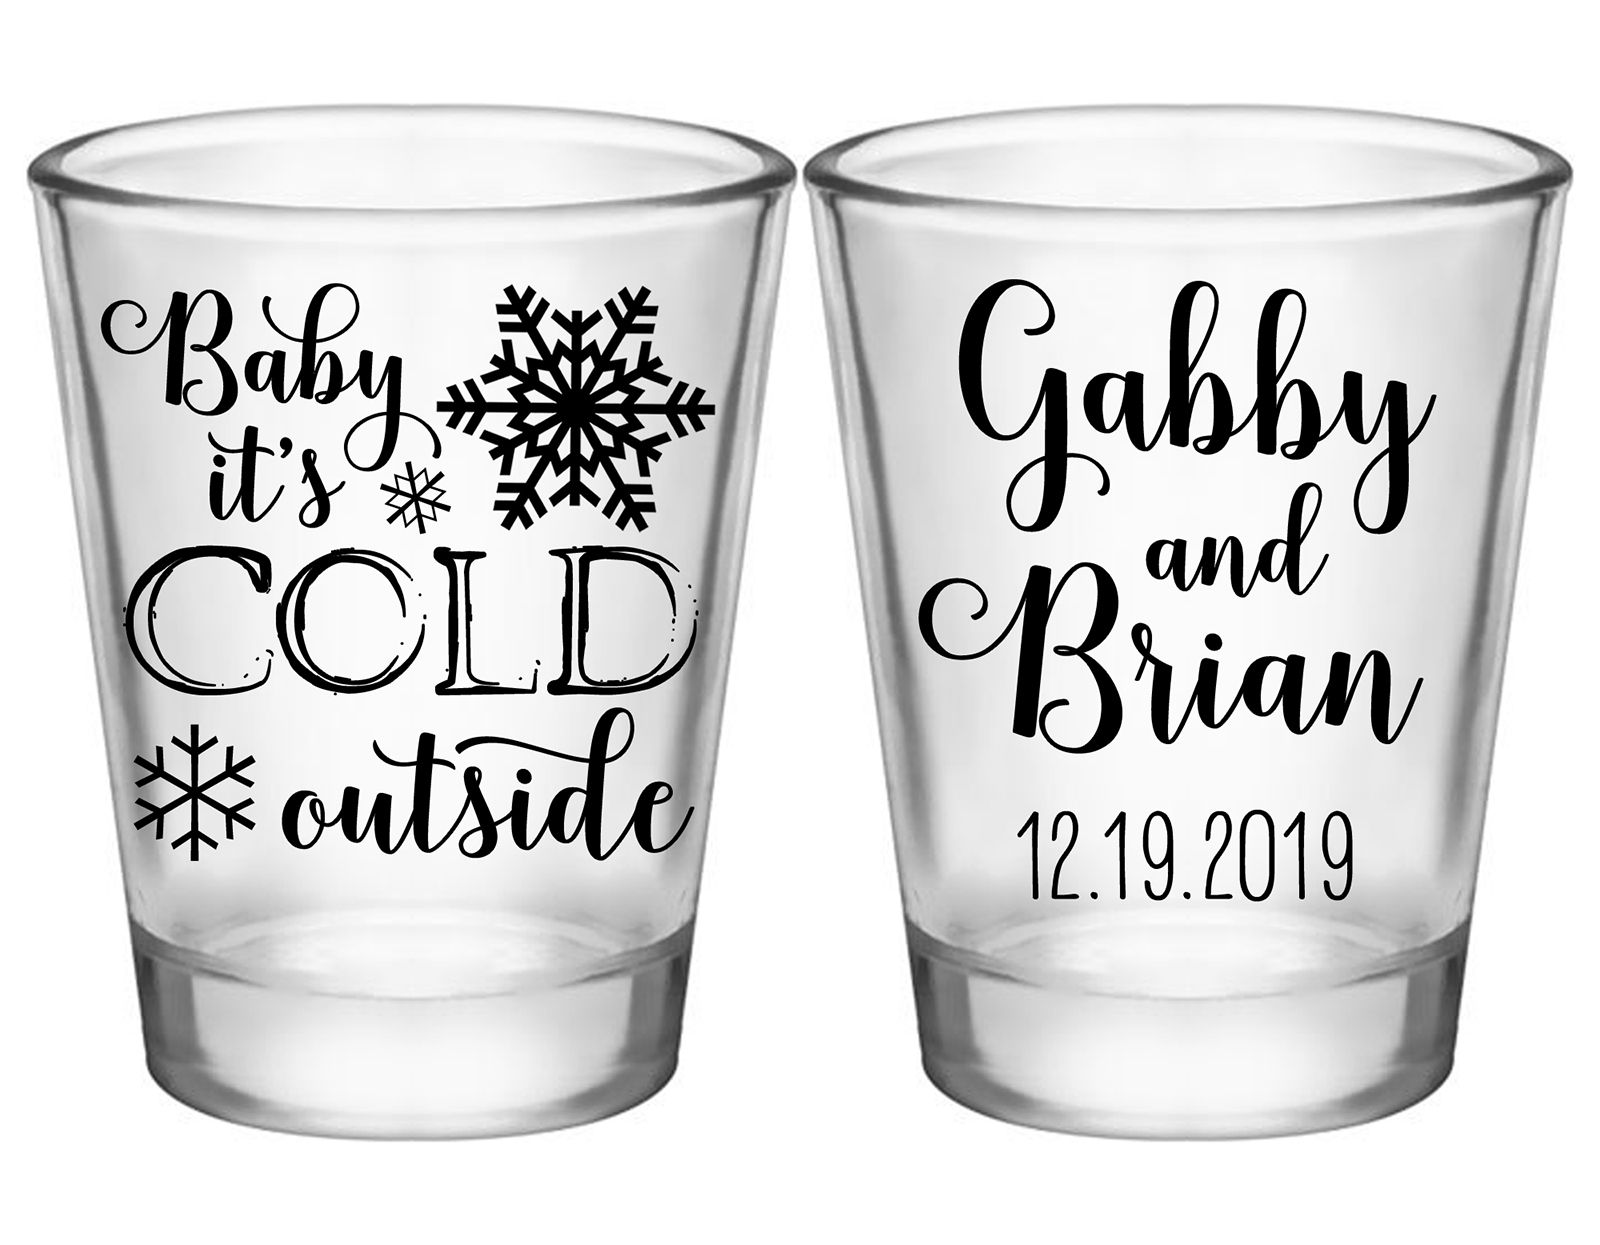 Personalized Wedding Shot Glasses Unique Wedding Favors Creative